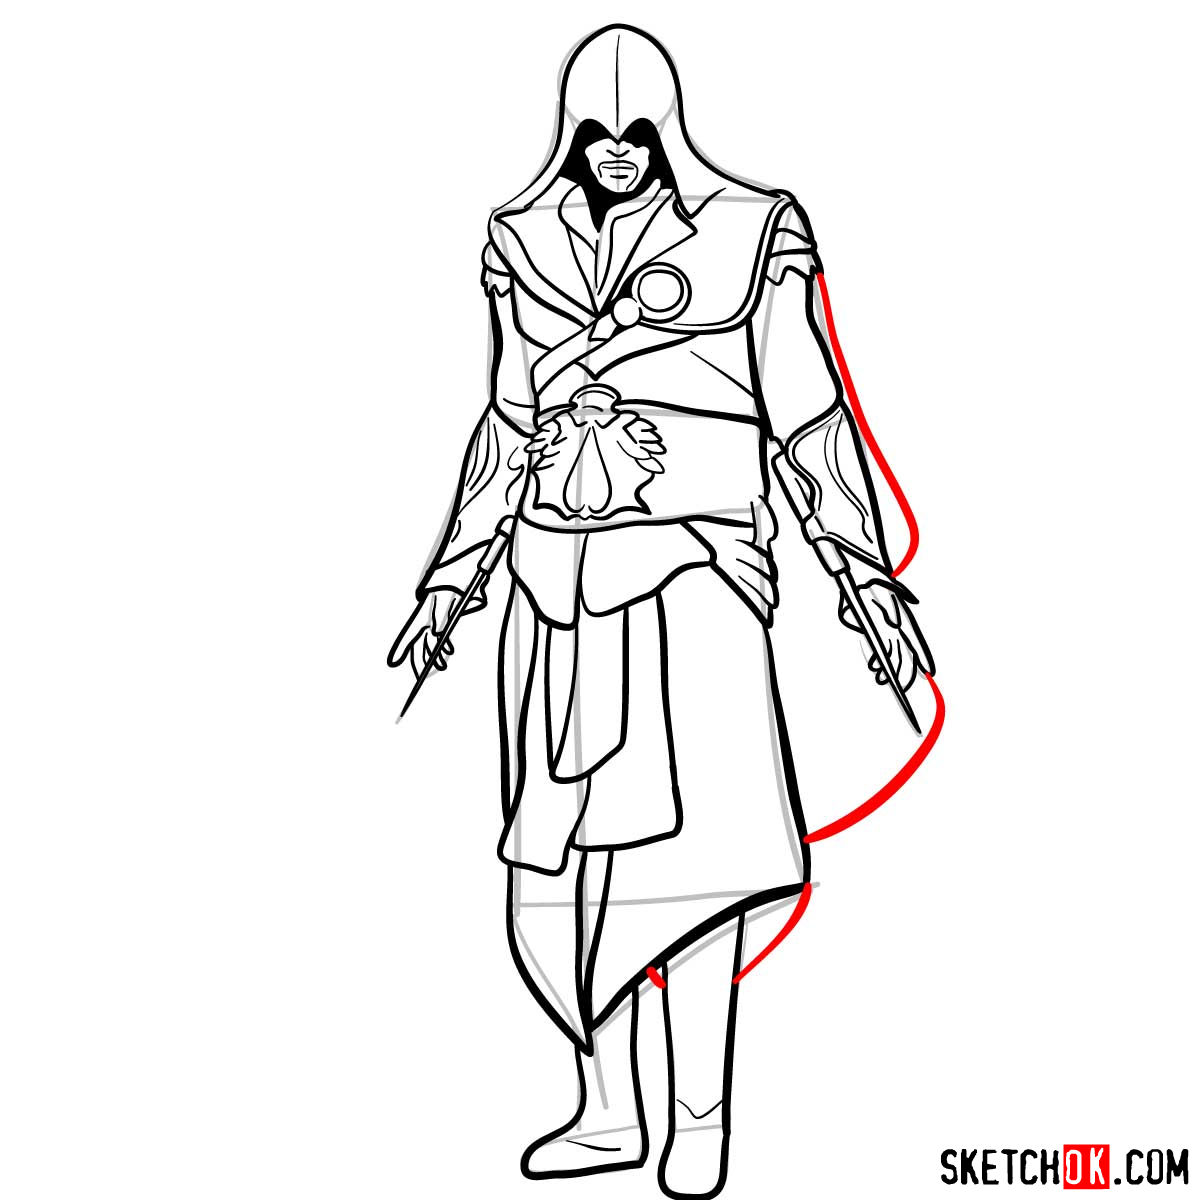 How to draw an Assassin from Assassin's Creed game - step 17